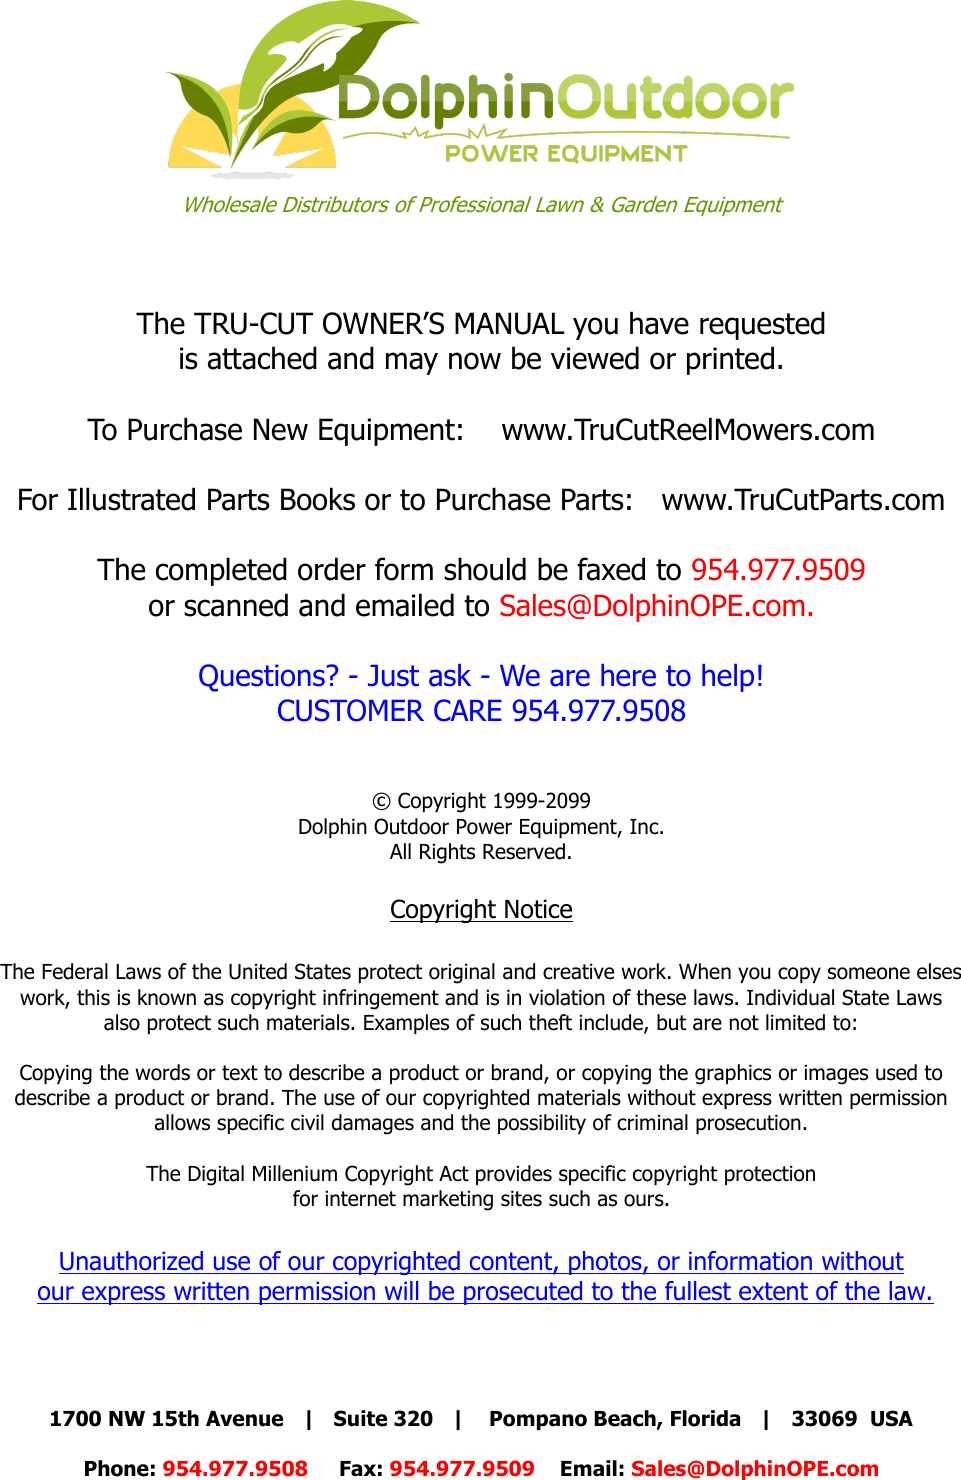 TRU CUT OWNERS MANUAL With Cover 06 2013